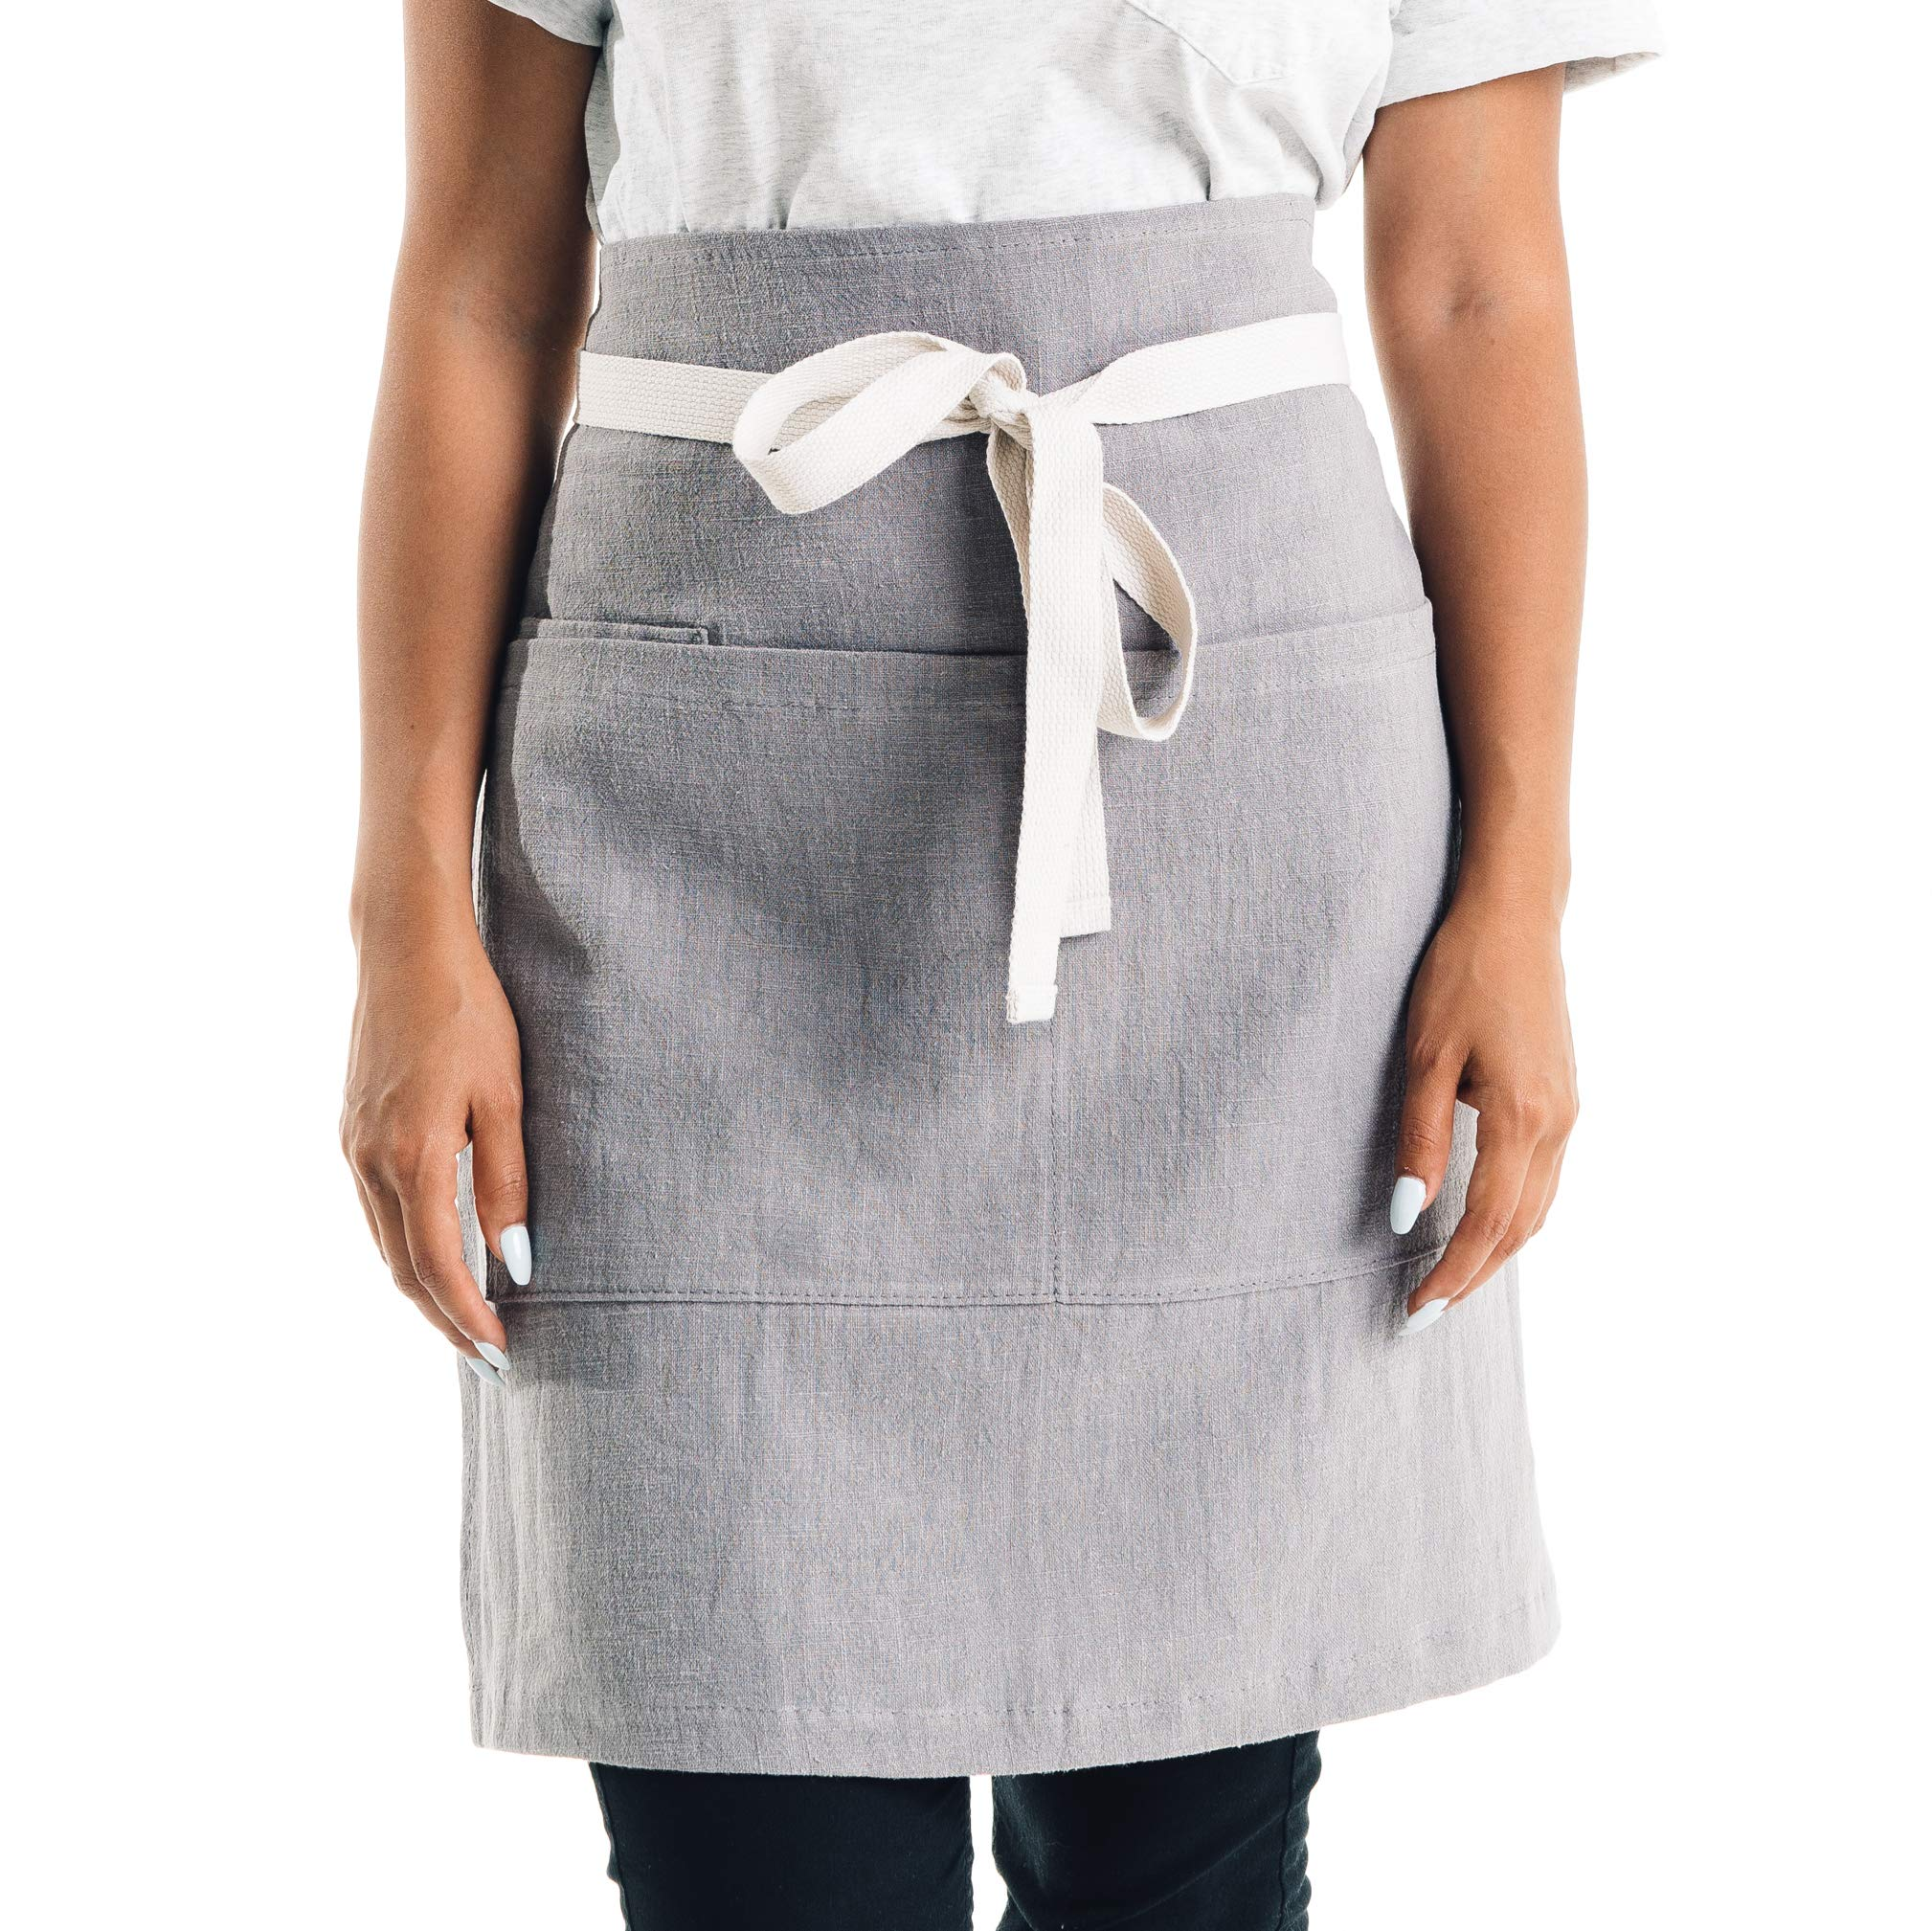 Caldo Linen Bistro Apron - 3 Pockets, Mid Length 23 x 23, 40 Inch Waist Ties - Unisex Uniform for Server, Waiter, Waitress, Coffee Shop, Cafe, Bartender, Catering (Grey)